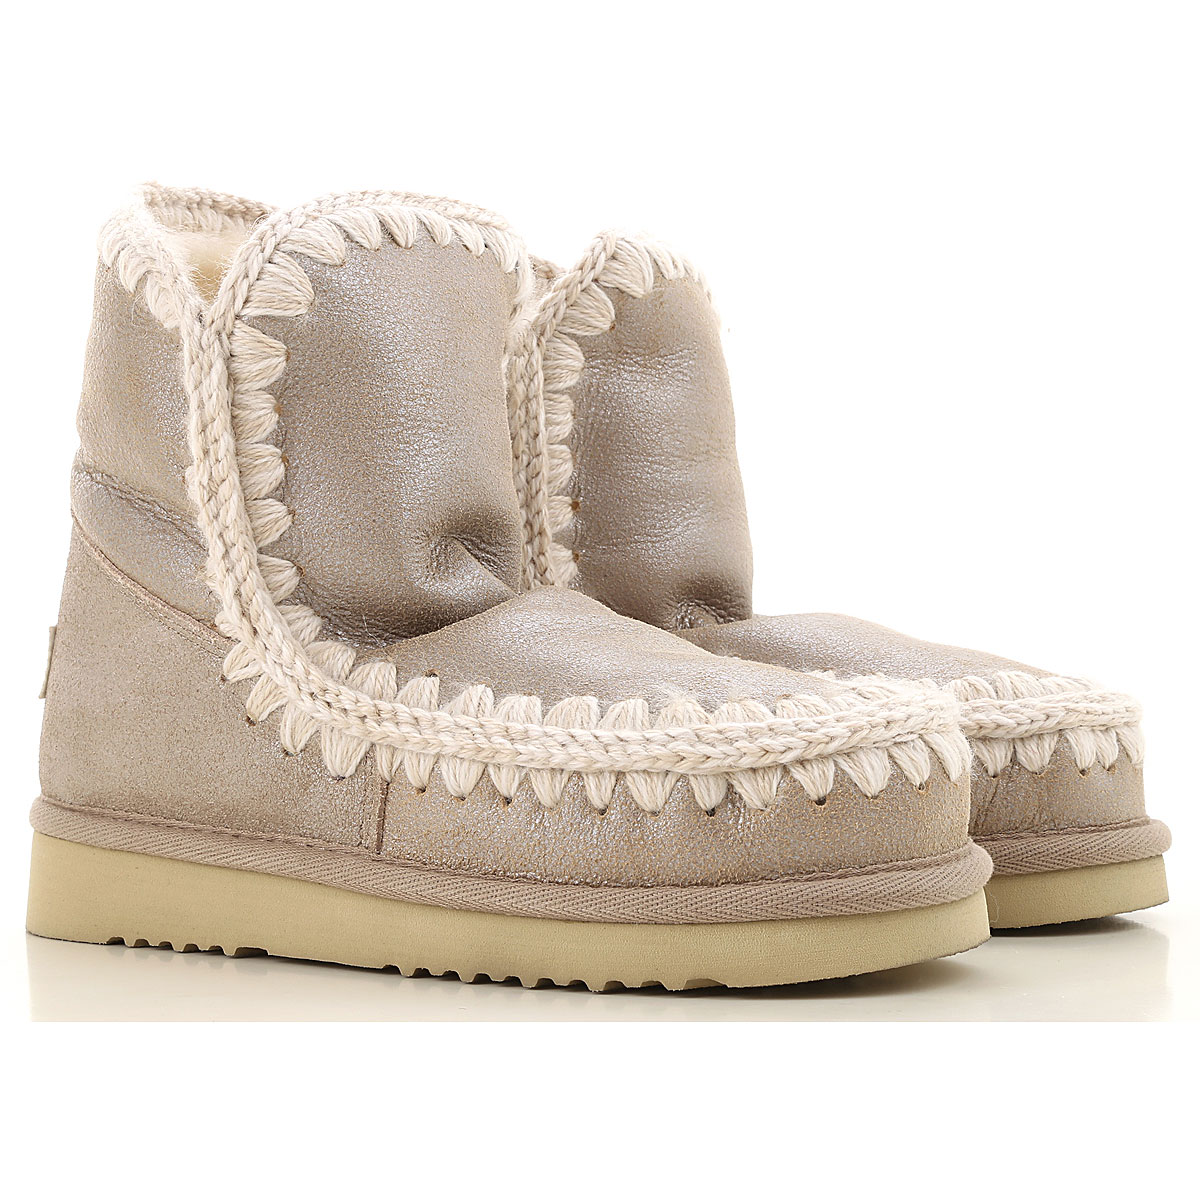 Mou Boots for Women, Booties On Sale, Sand, Leather, 2019, EUR 36 - UK 3 - USA 5.5 EUR 38 - UK 5 - USA 7.5